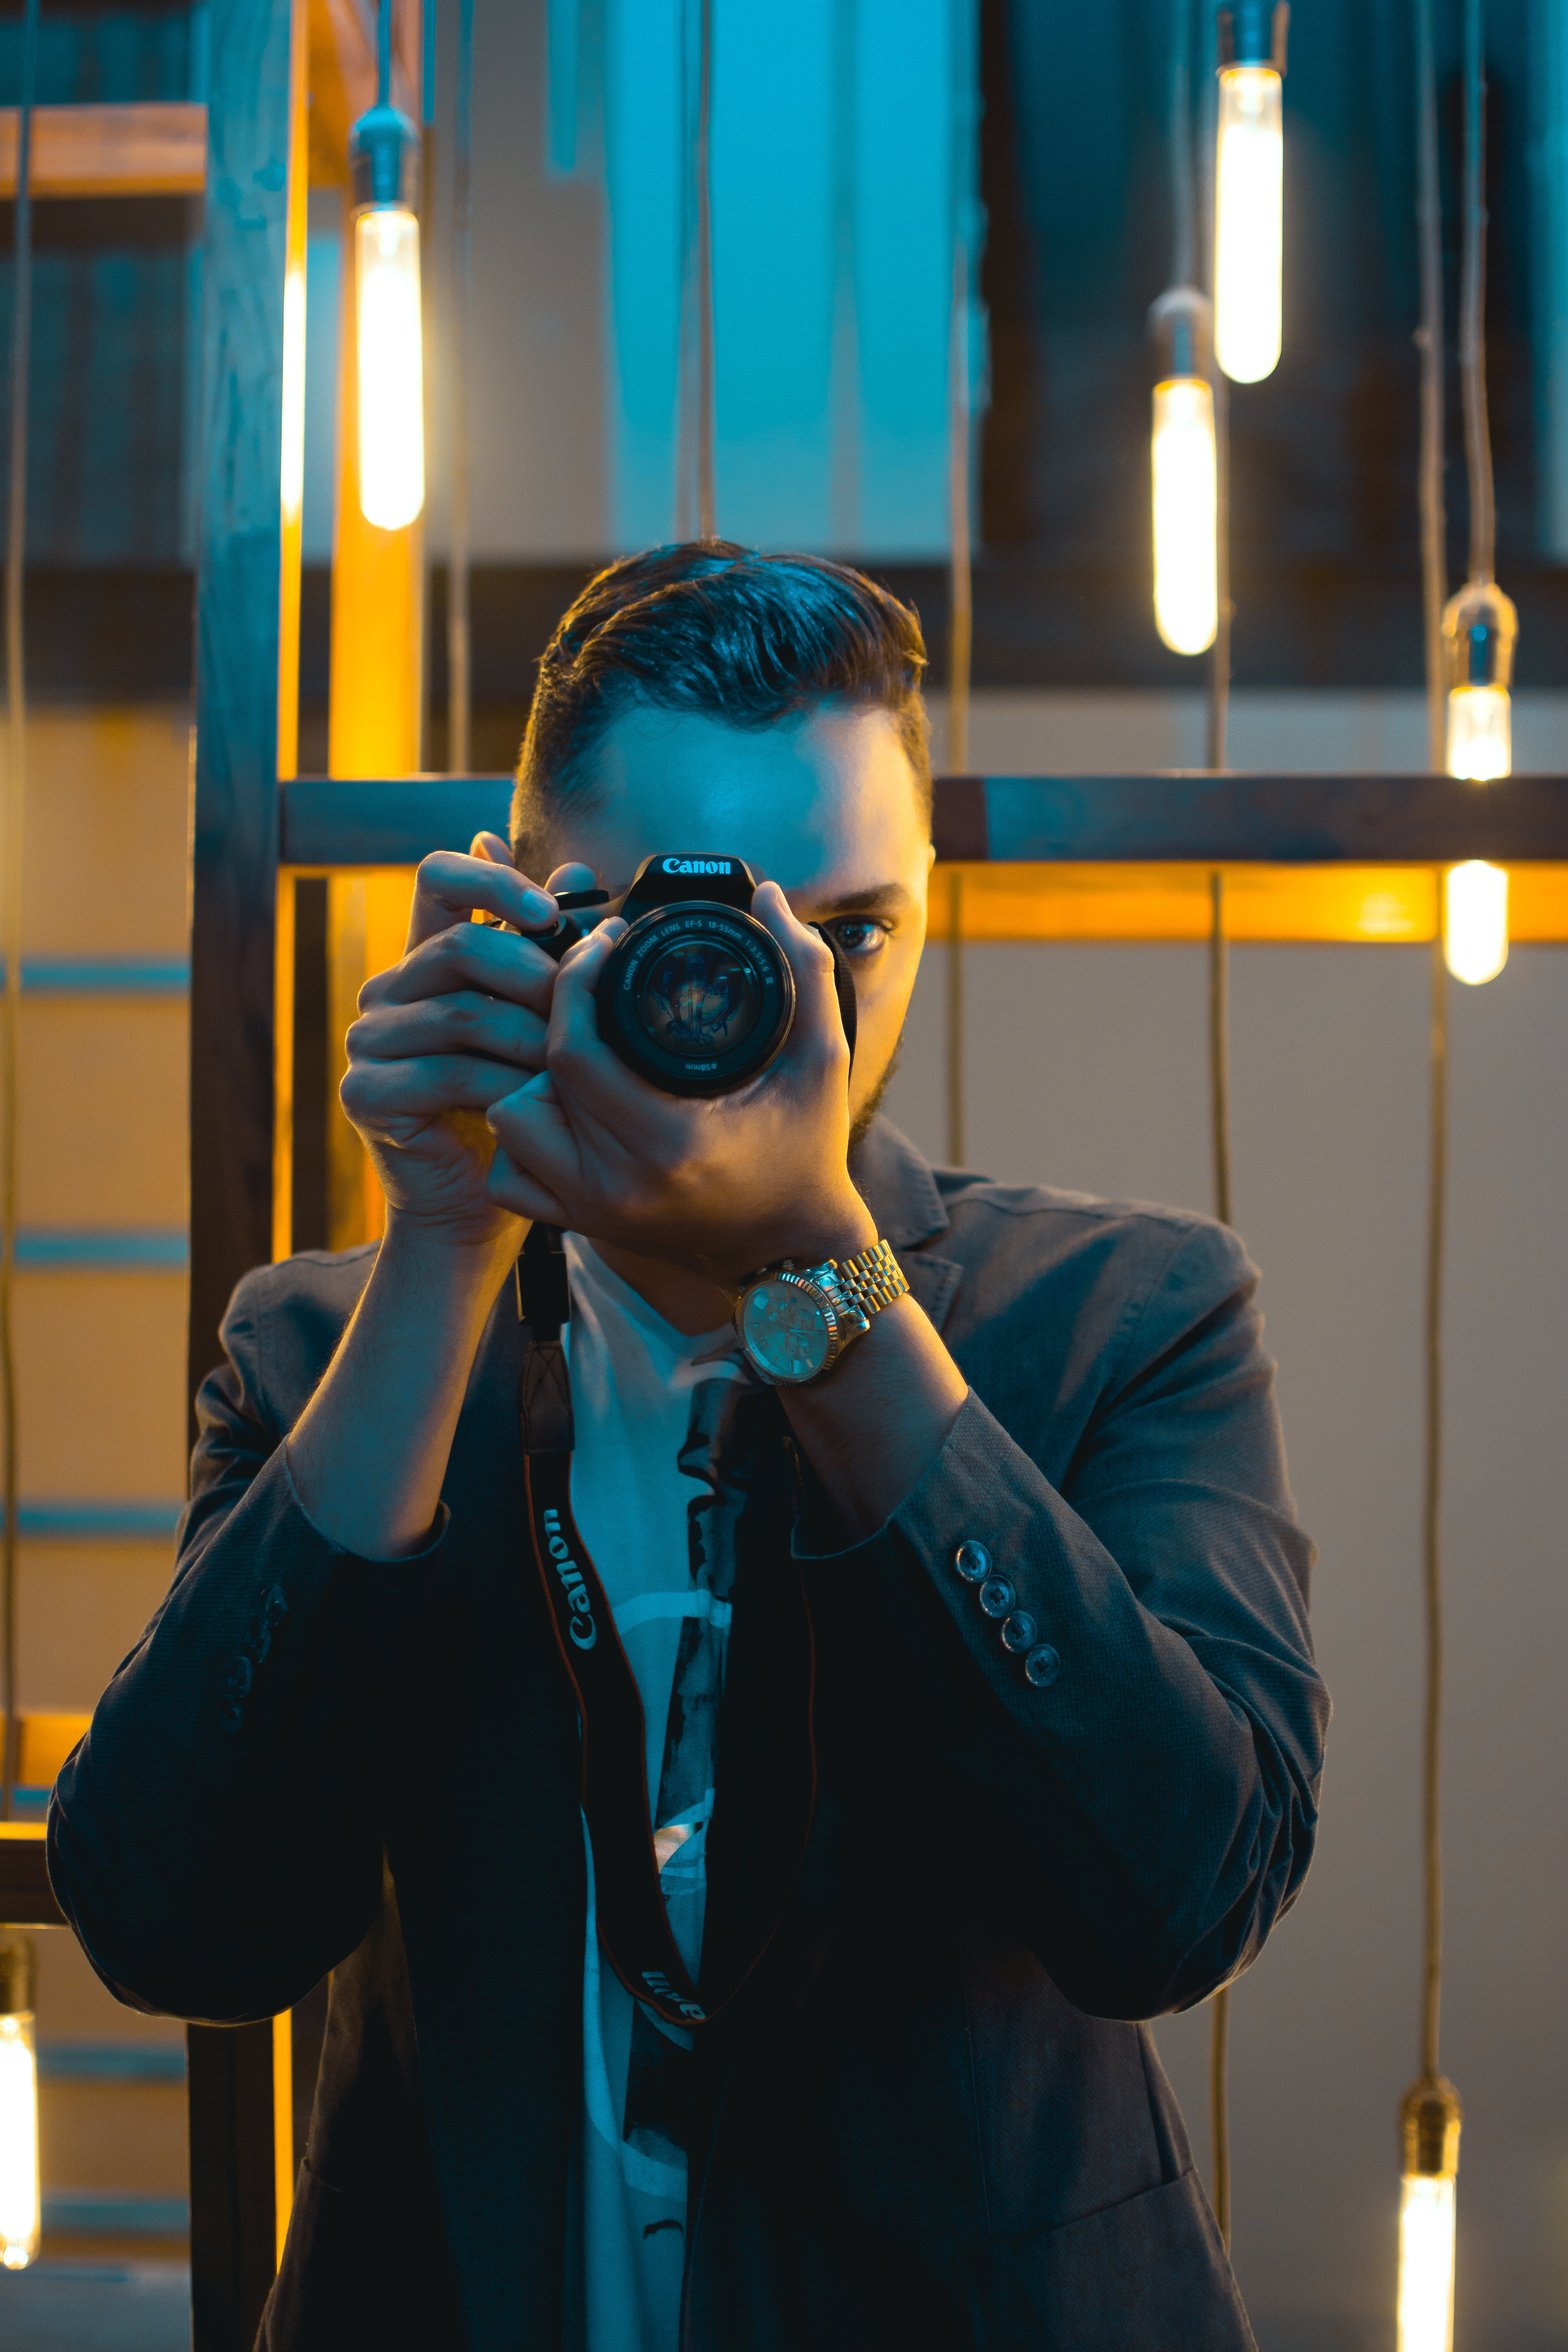 Man in Black Suit Holding Canon Dslr Camera